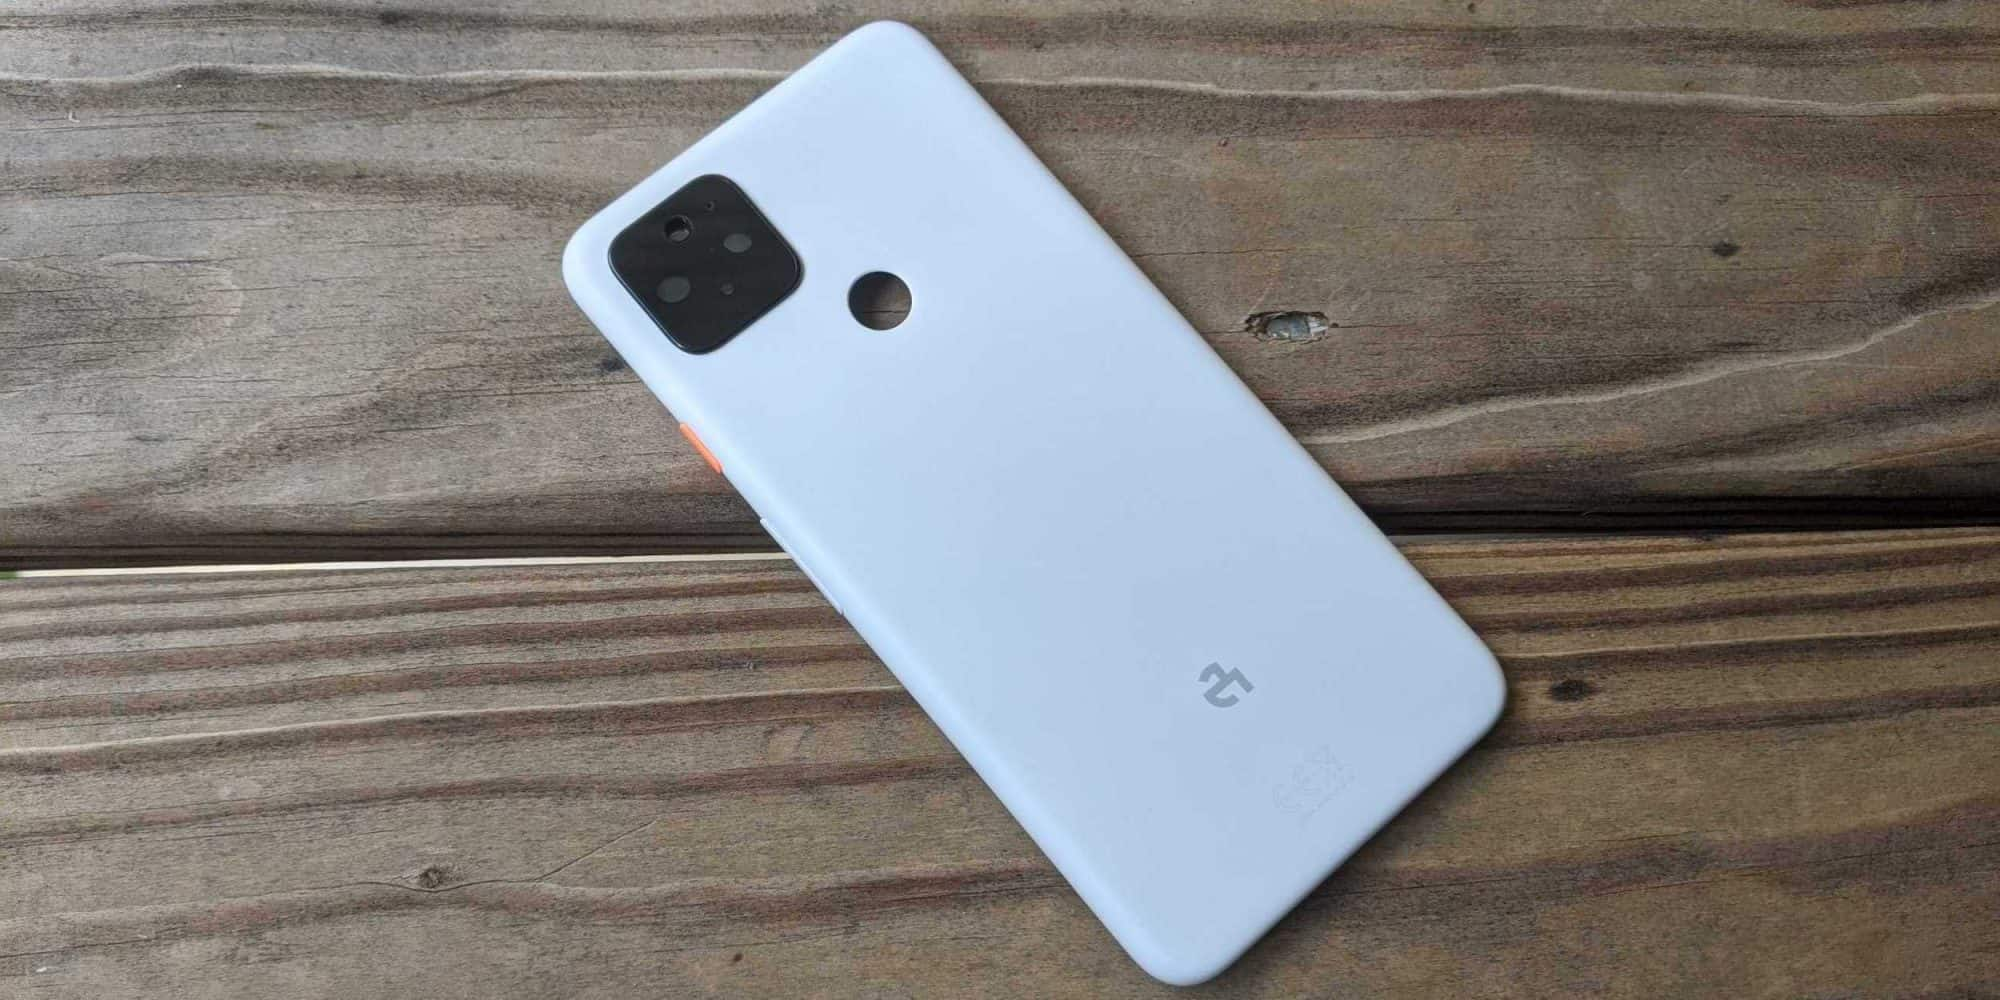 Early google pixel 4a performance review compares the 2020 mid-range pixel to the pixel 4, pixel 3a, and pixel 3 xl